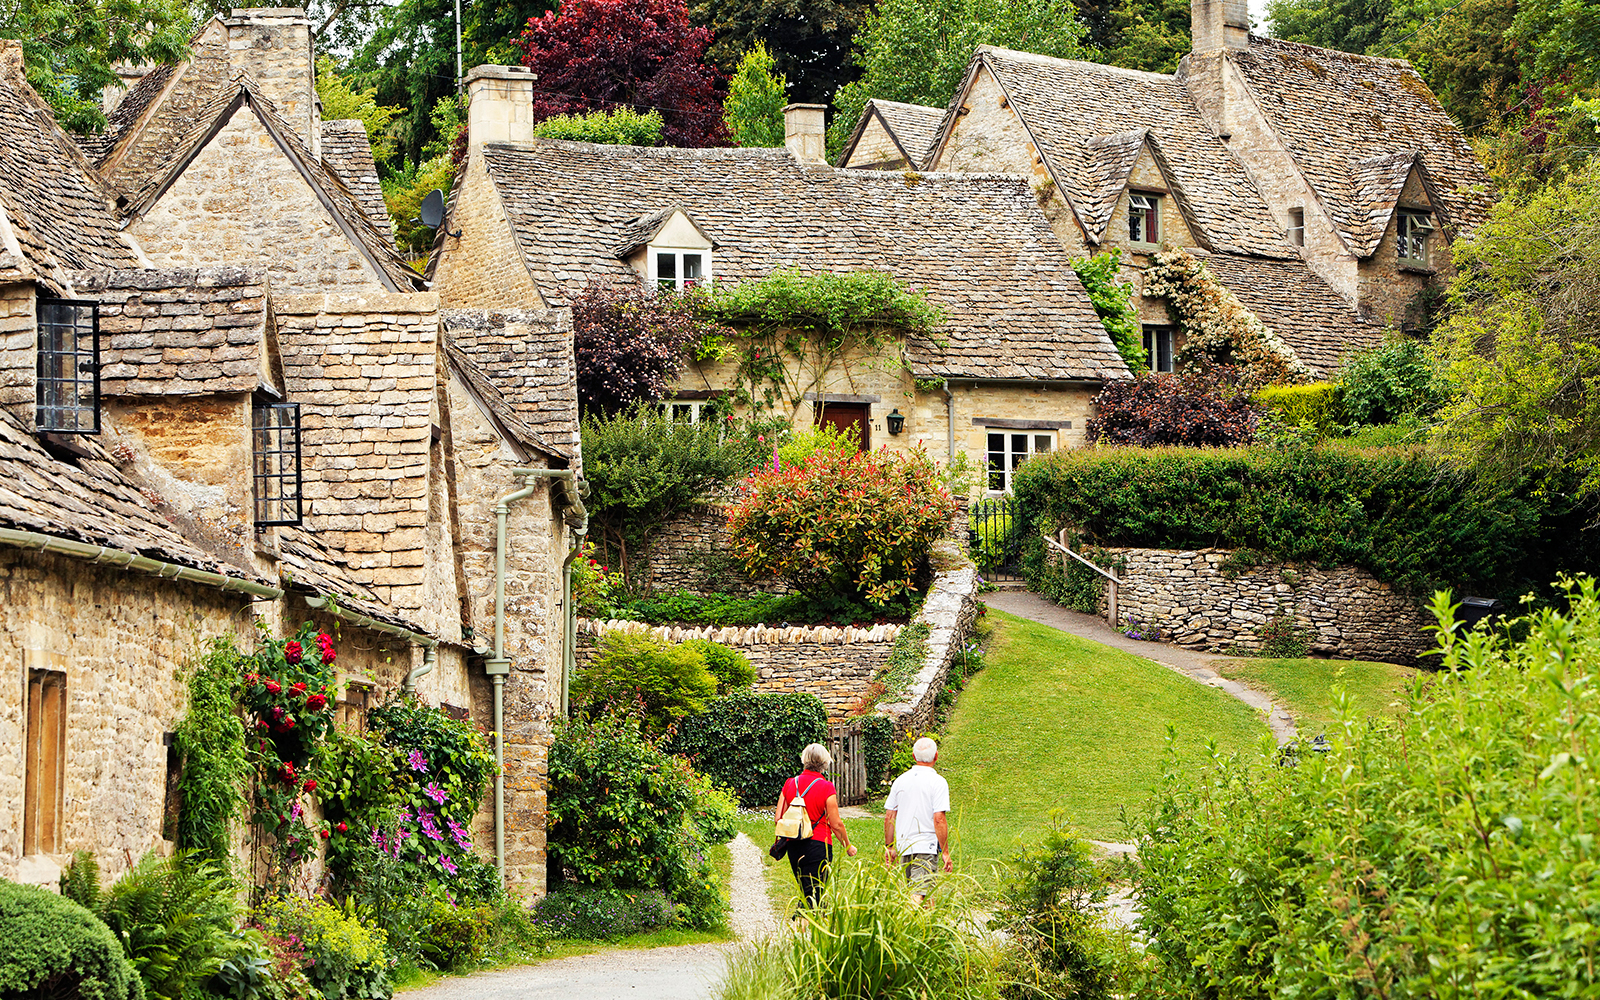 Europe's Most Beautiful Villages: Bibury, England